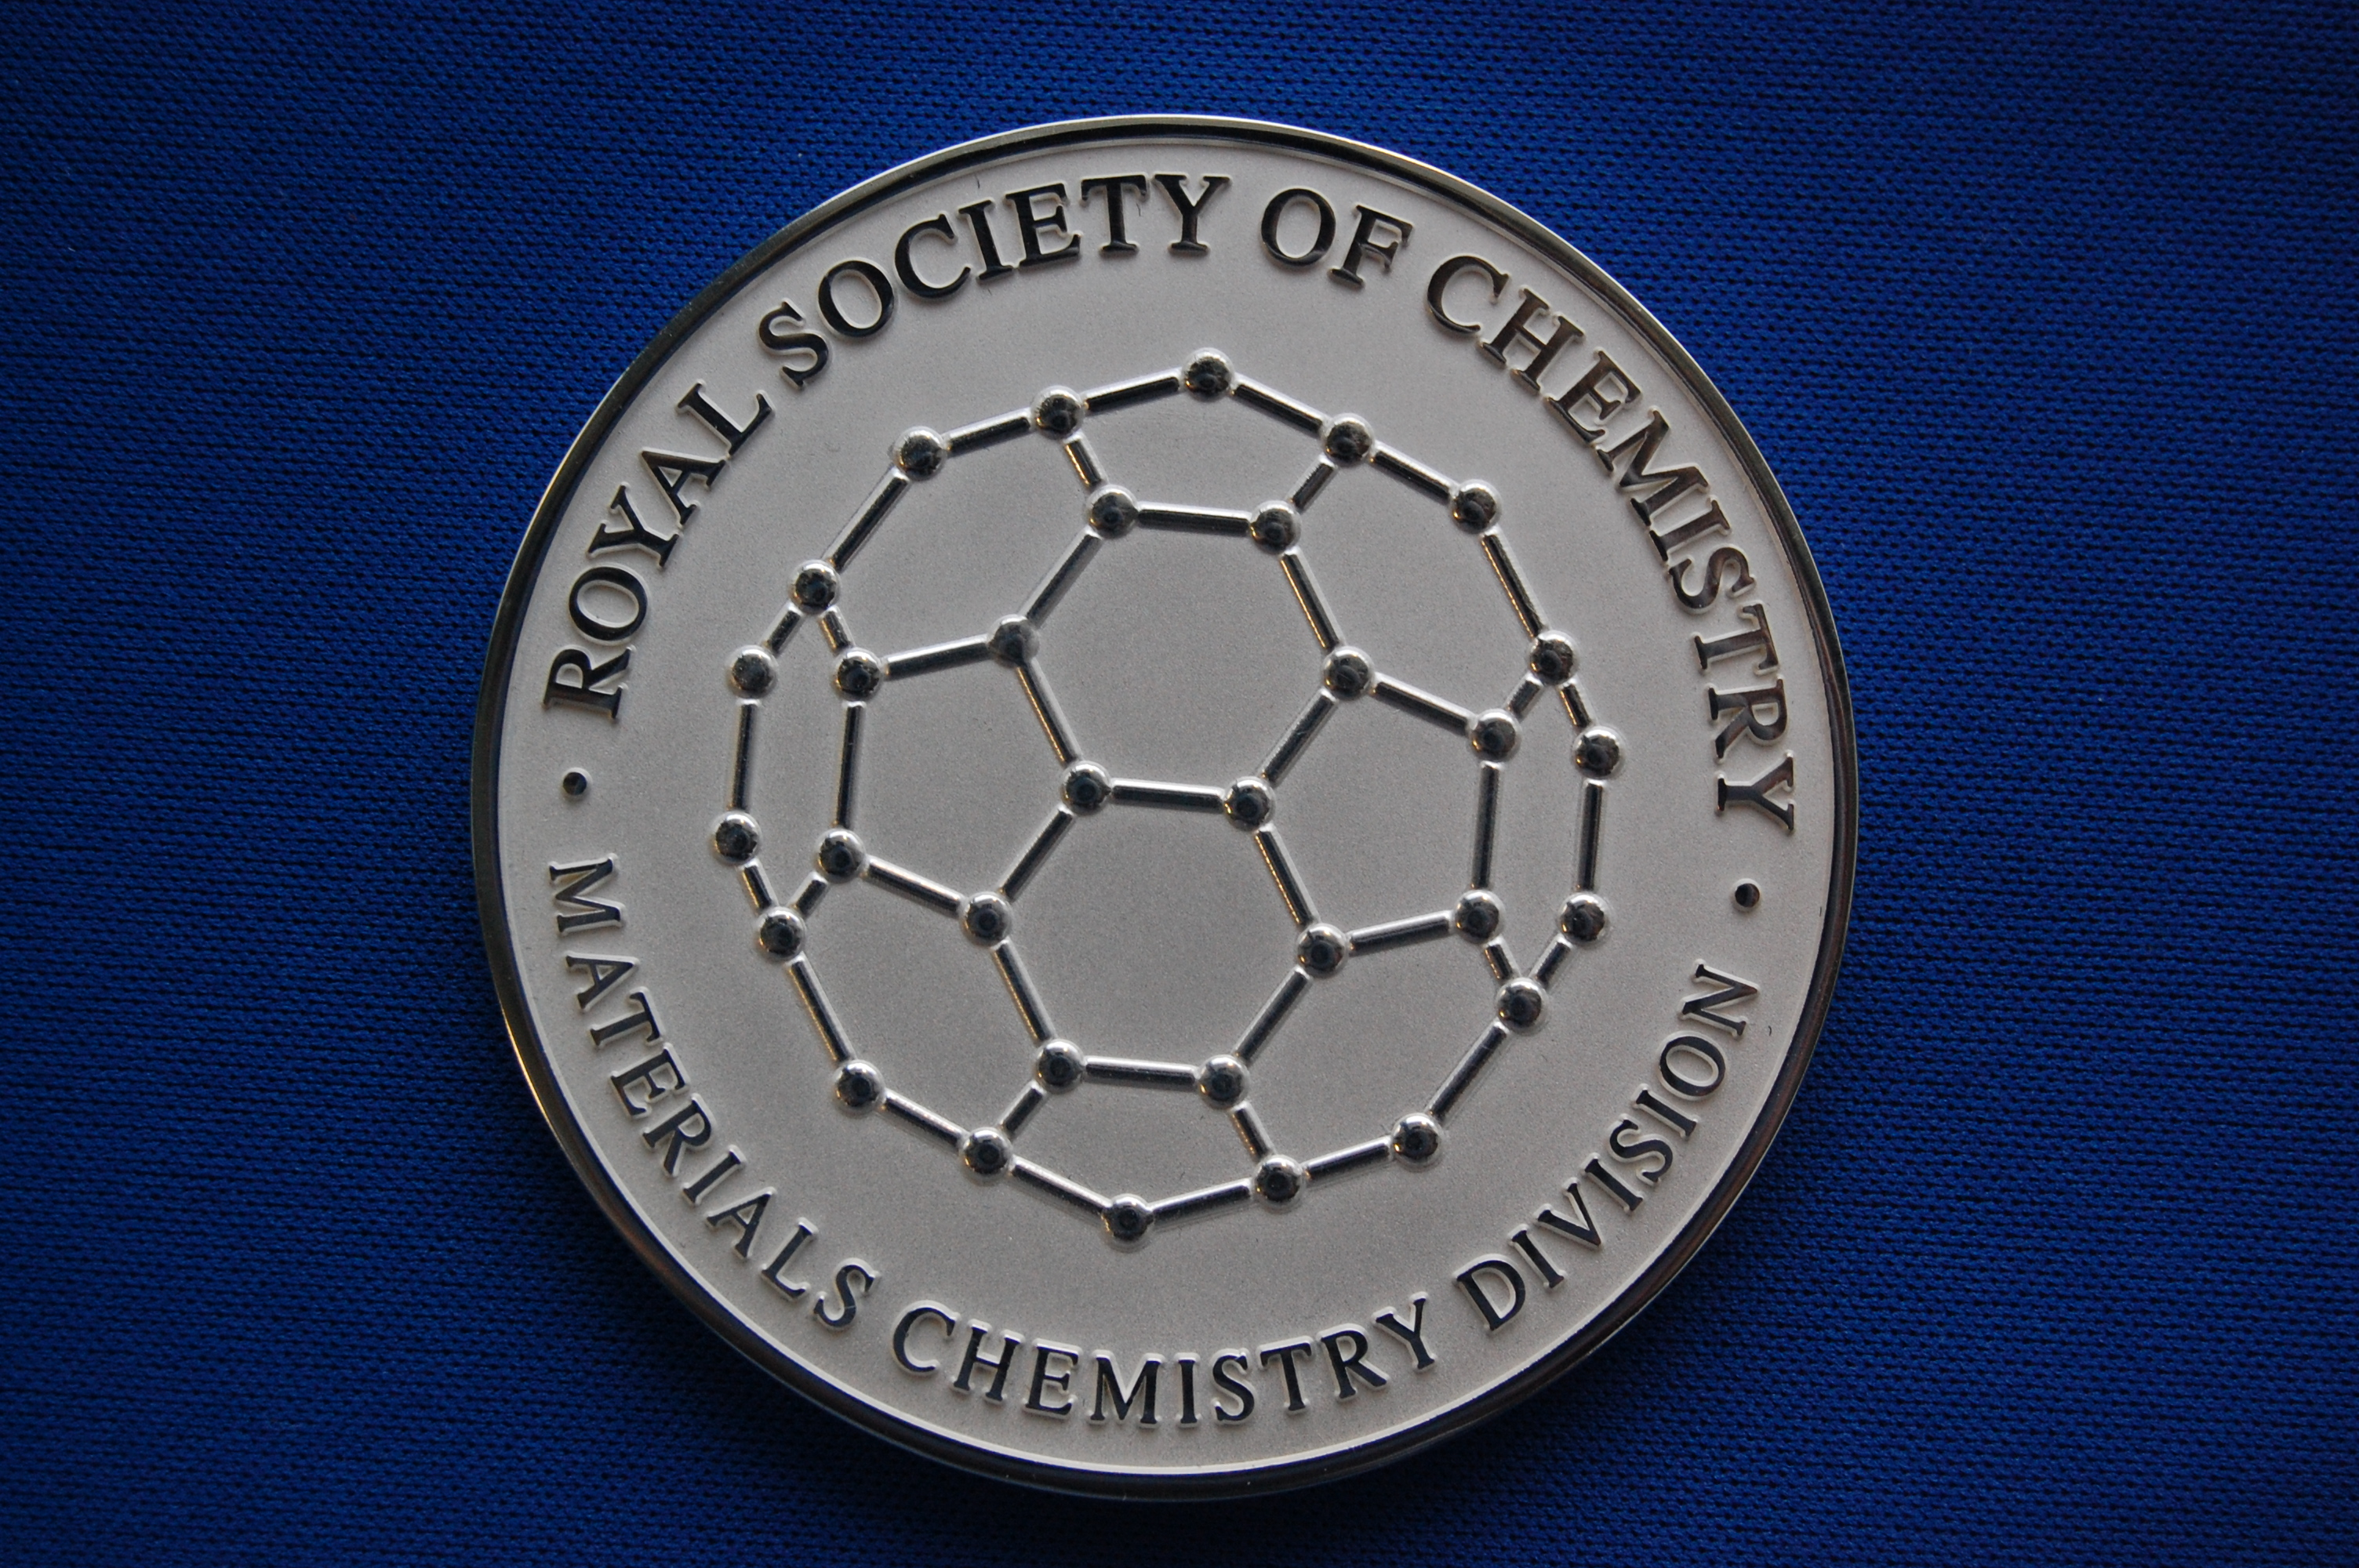 List Of Royal Society Of Chemistry Medals And Awards